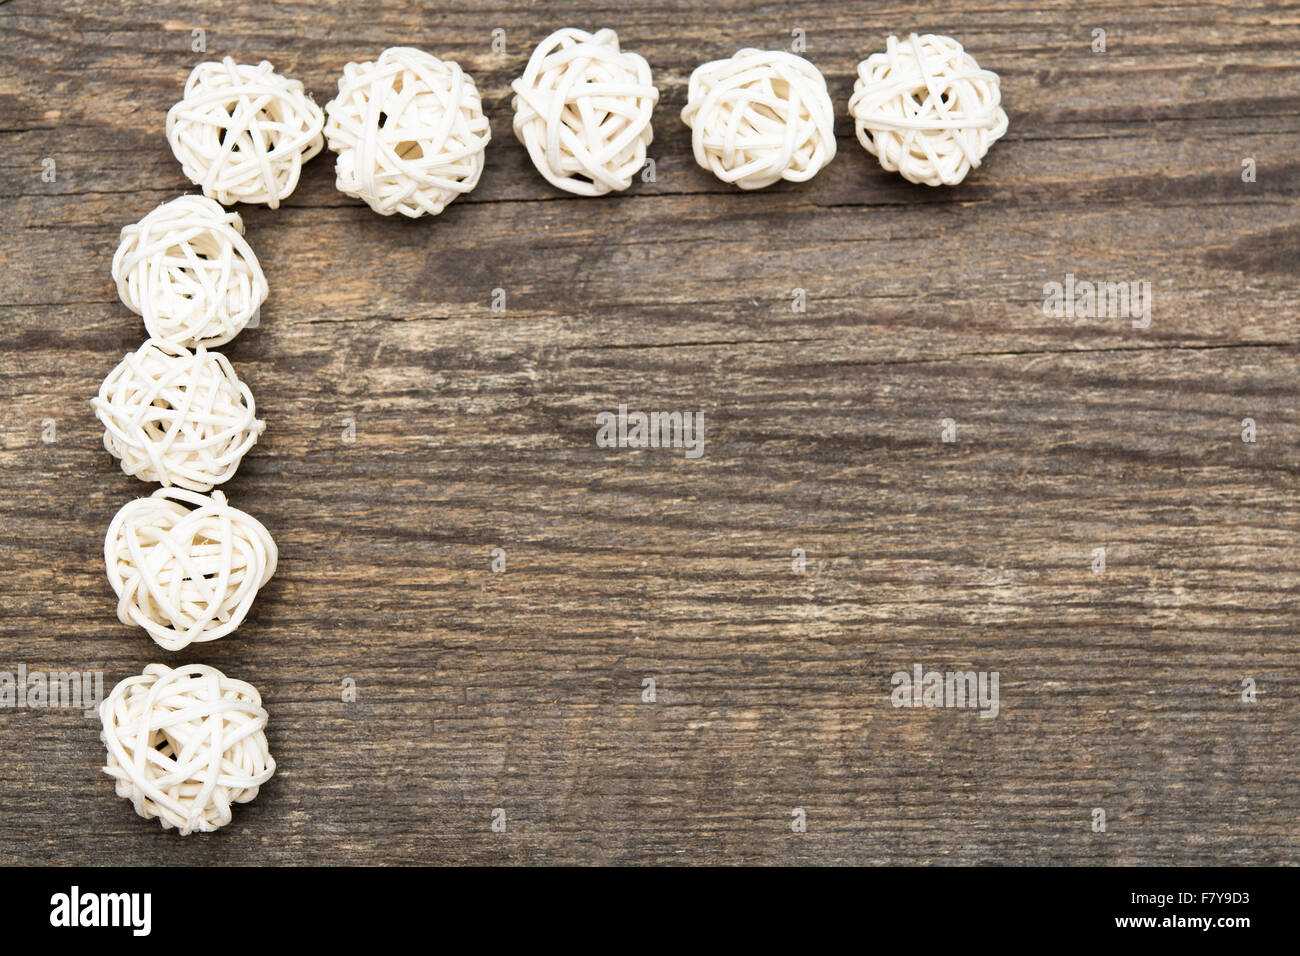 Holiday background with decorative white balls on wooden desk with copy space - Stock Image